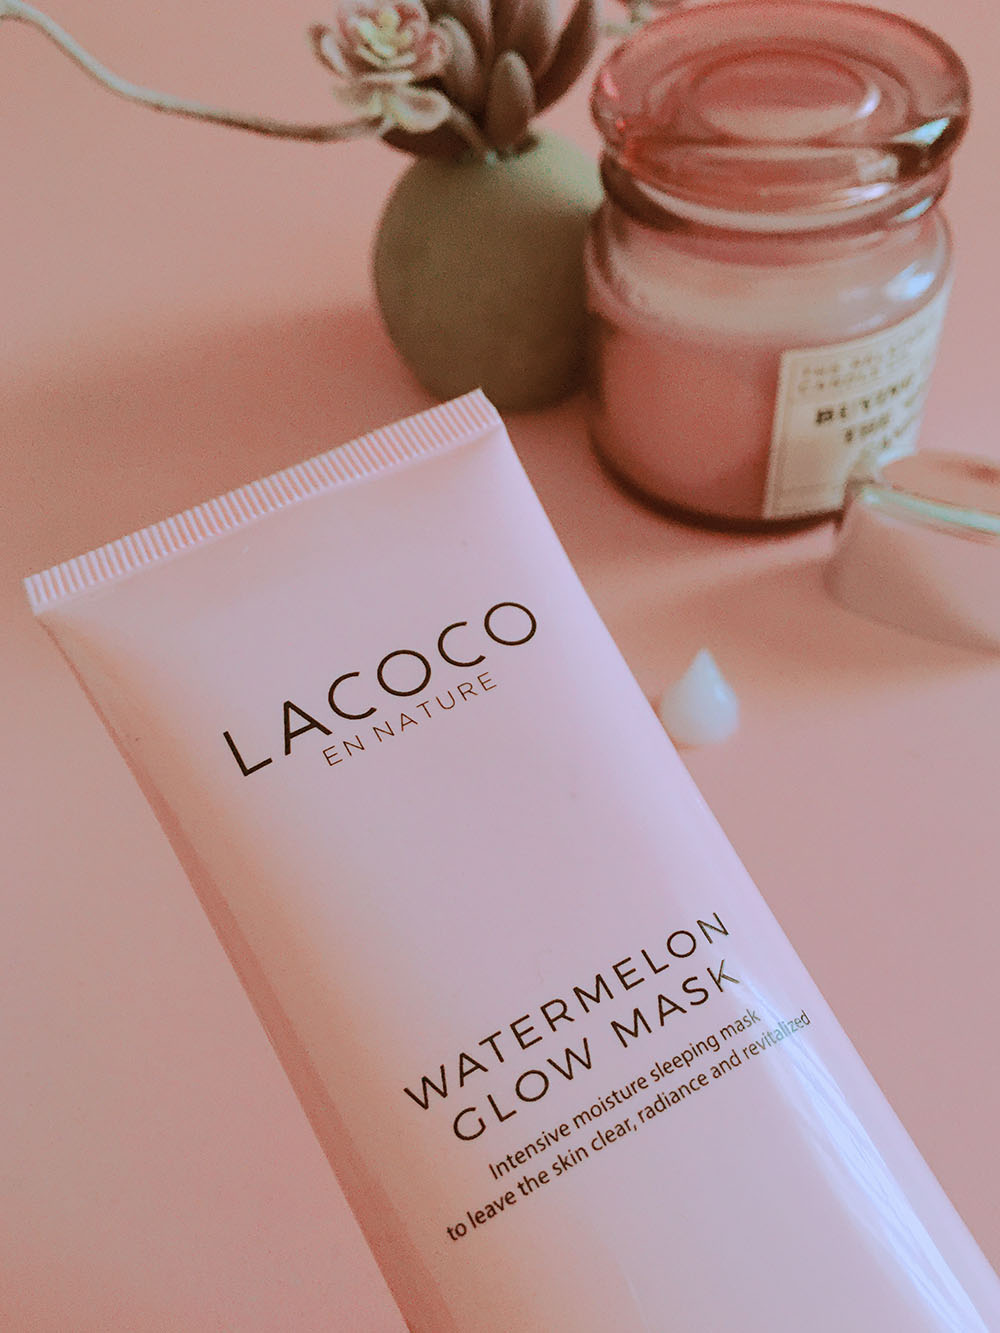 Lacoco Watermelon Glow Mask